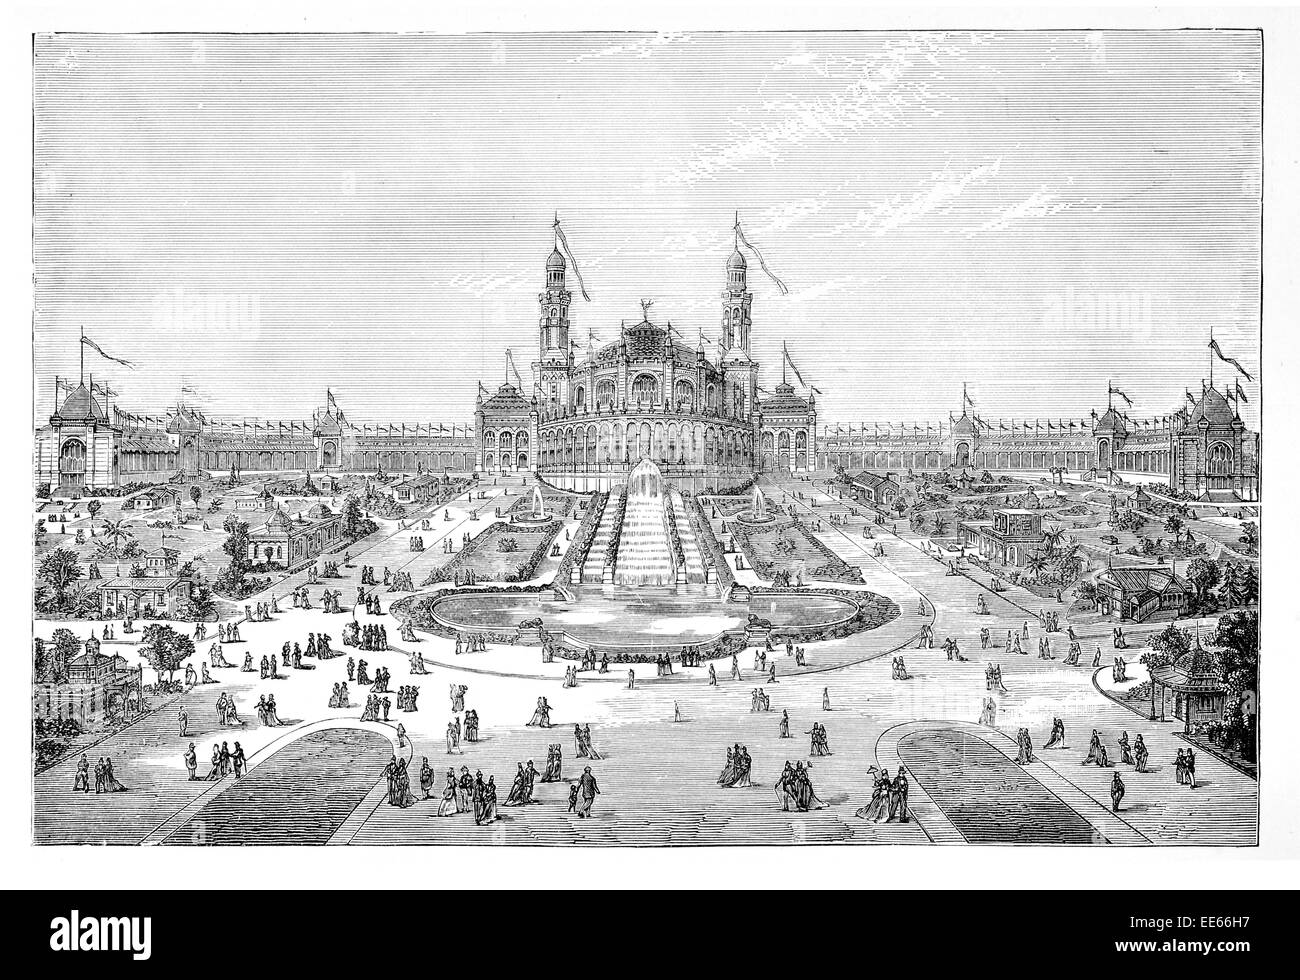 Palais du Trocadéro Garden Paris International Exhibition 1878  World's Fair Exposition Universelle France - Stock Image